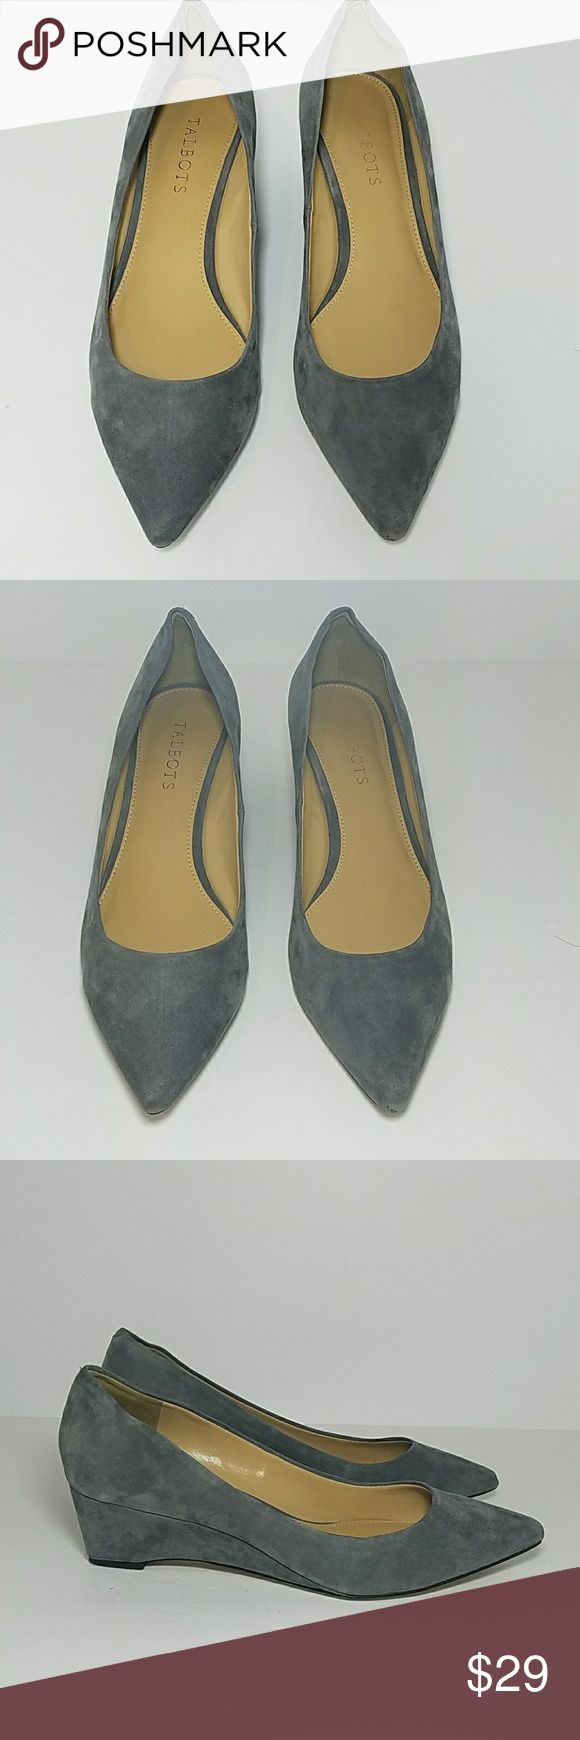 Gray suede pointed wedges bt Talbots Gray suede wedges with pointed toe.  Condition is used with normal wear on the soles and some wear on the heels. Talbots Shoes Wedges